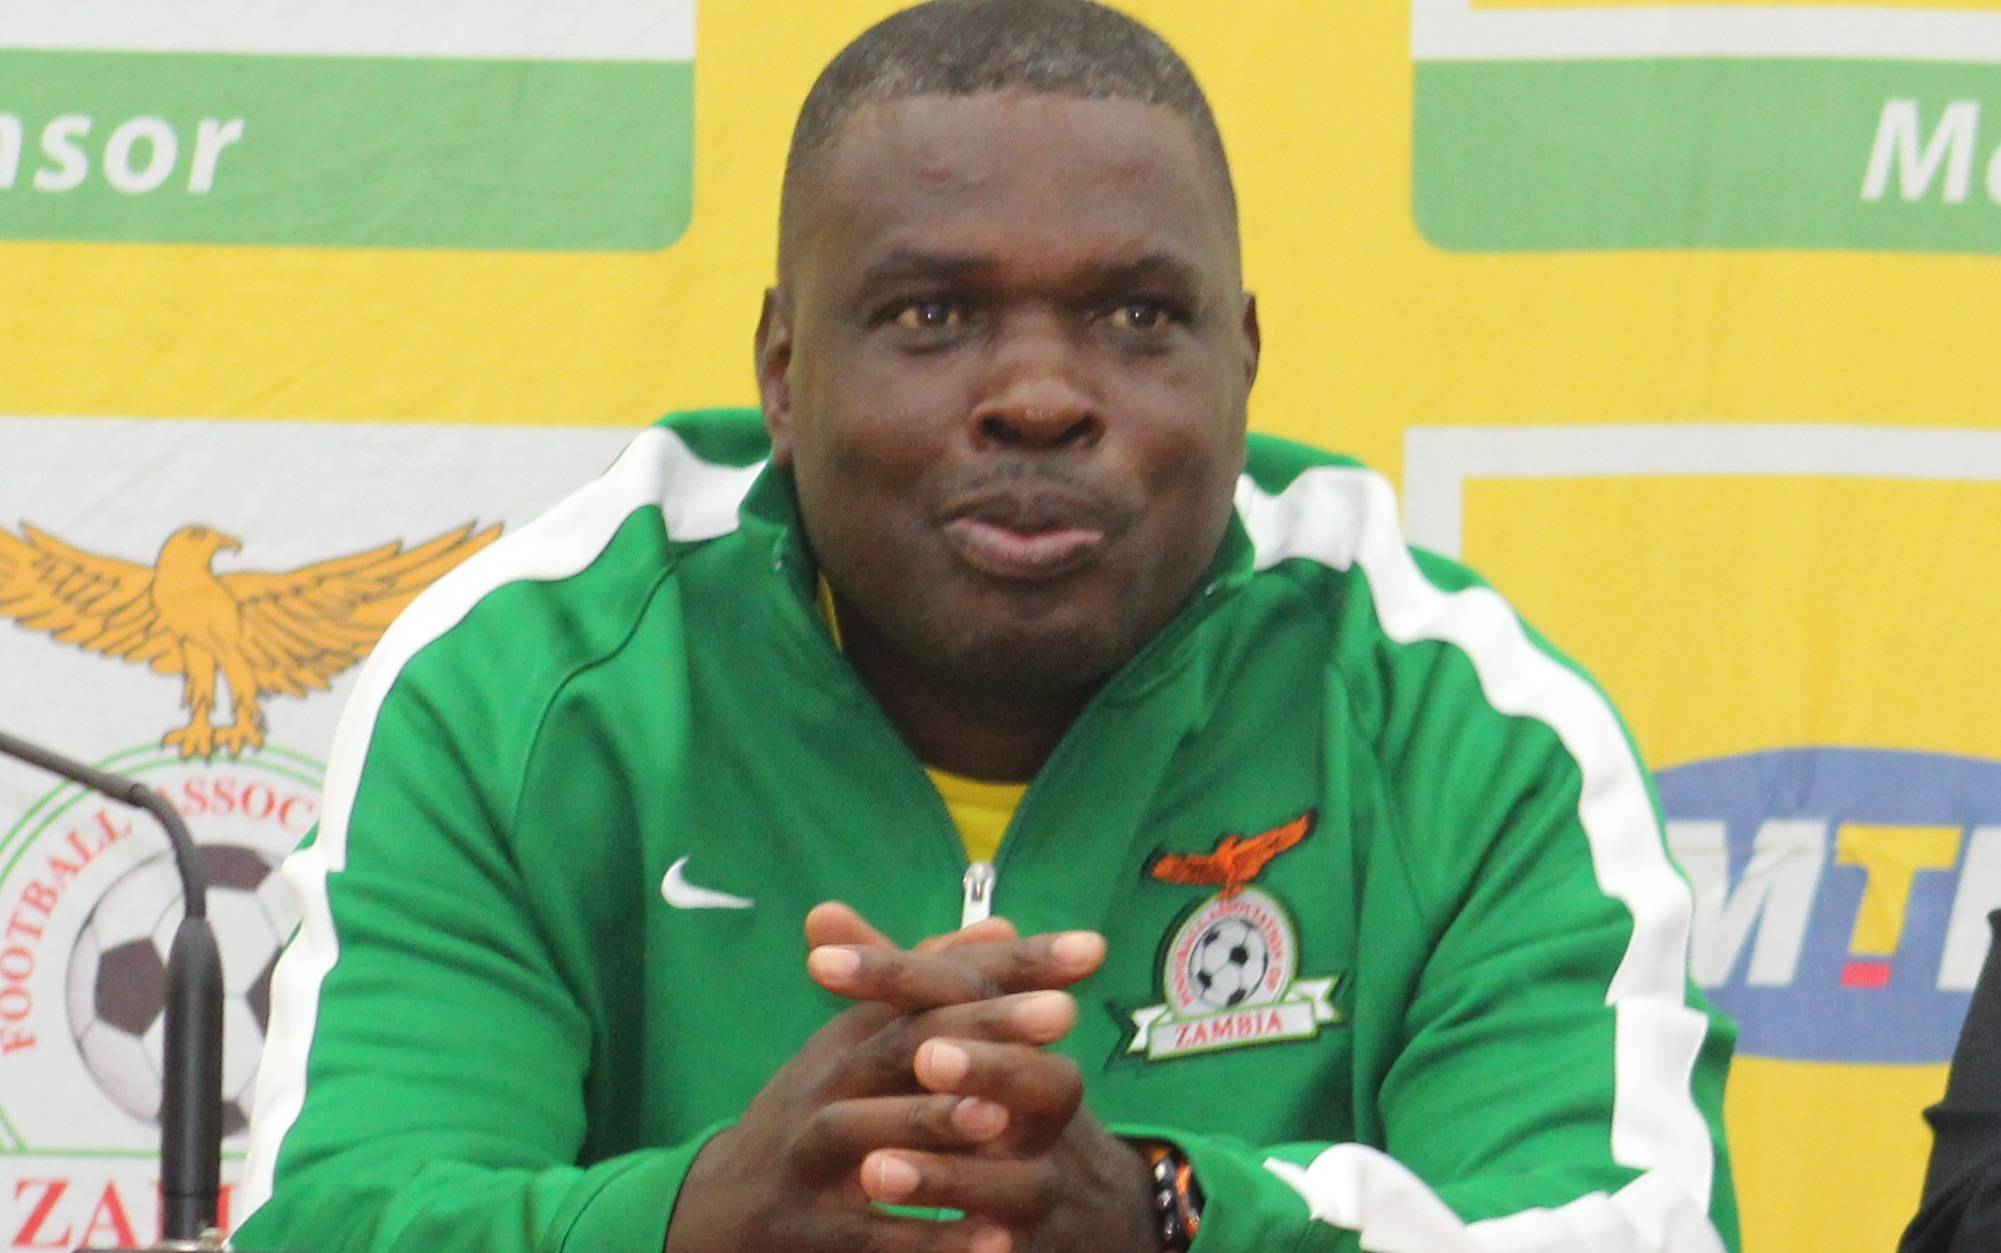 Zambia Coach Prepares For Super Eagles With Kenya Clash